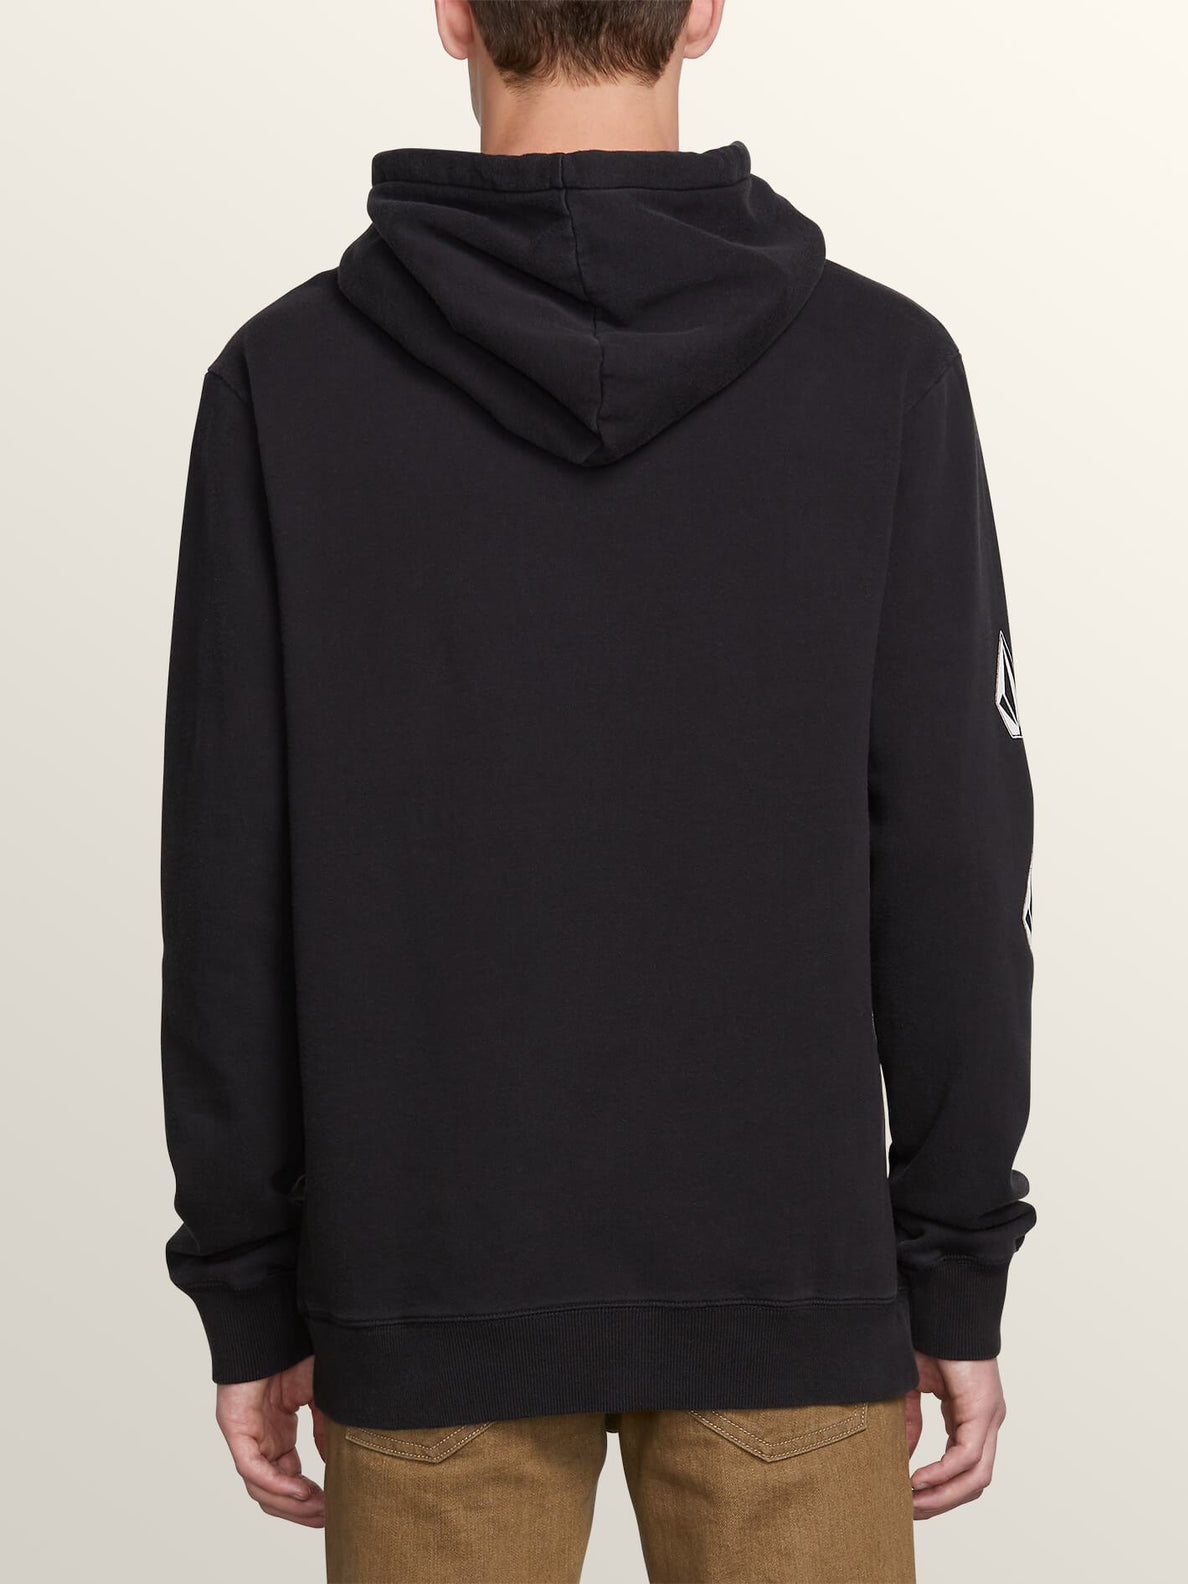 Deadly Stones Pullover Hoodie - Washed Black